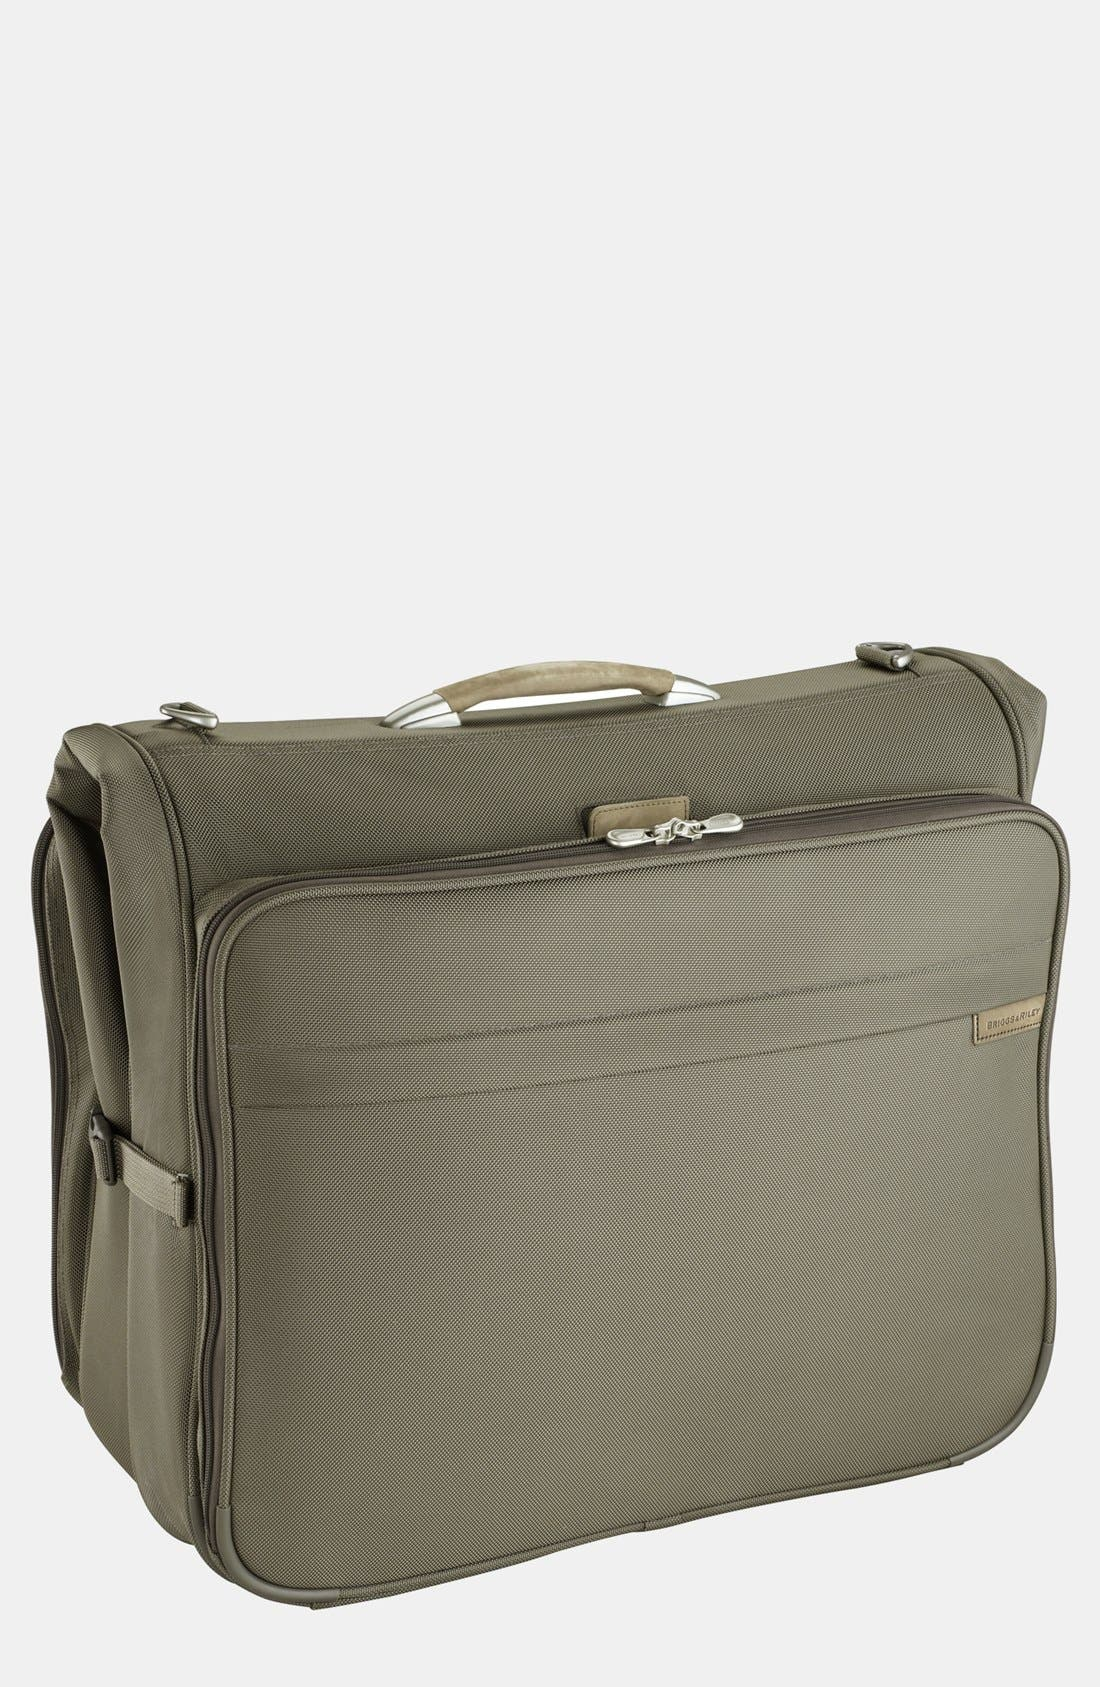 Alternate Image 1 Selected - Briggs & Riley Baseline 22-Inch Deluxe Garment Bag